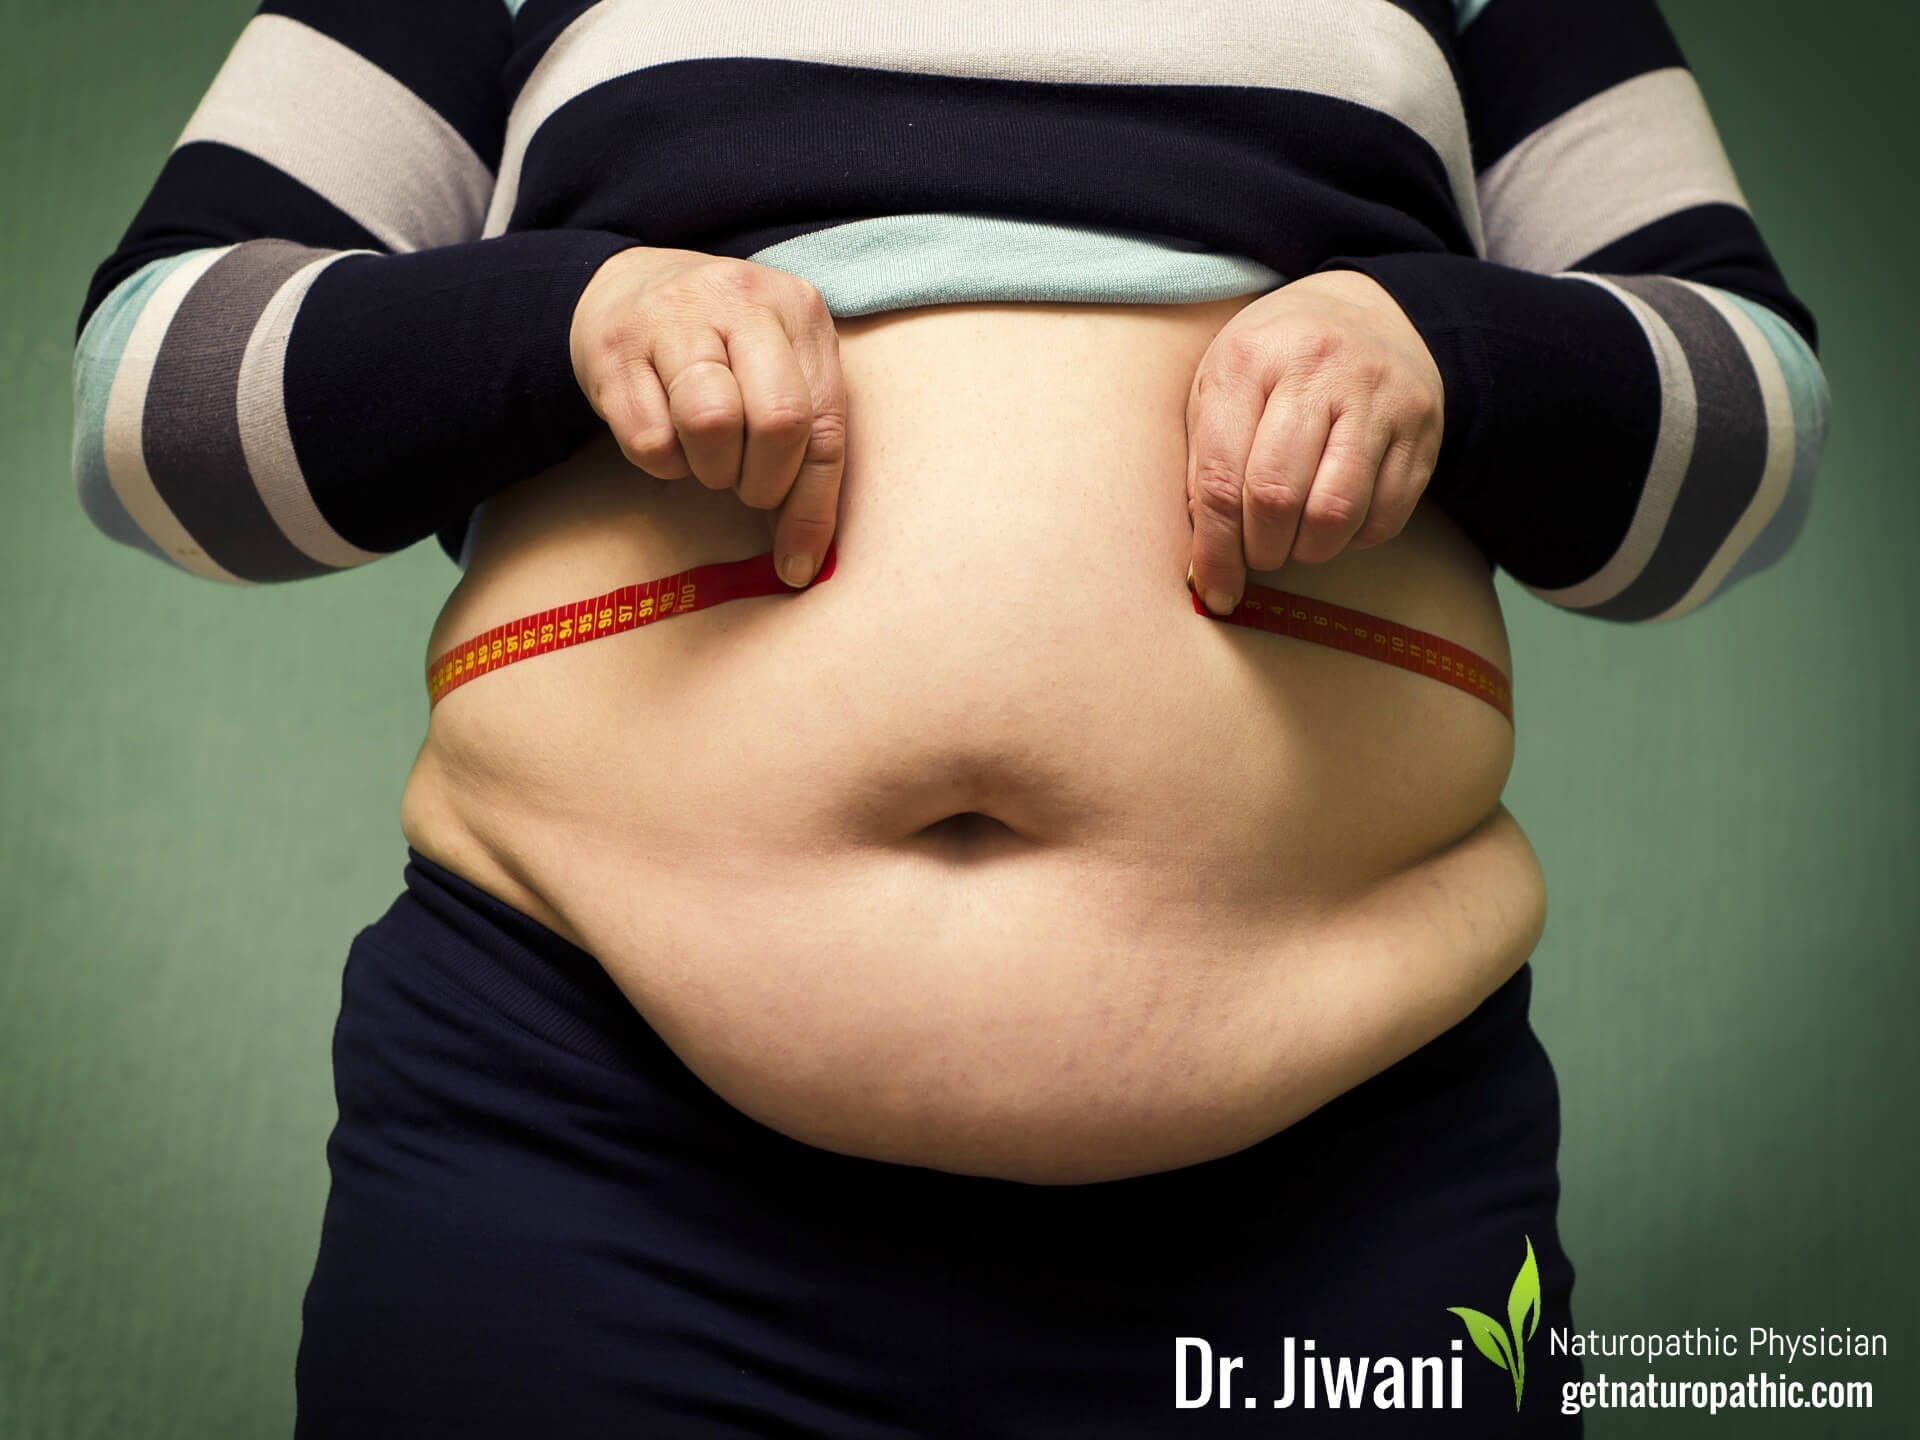 DrJiwani Weight Gain Obesity Sugar the Sweet Poison The Alarming Ways Sugar Damages Your Body & Brain* | Dr. Jiwani's Naturopathic Nuggets Blog